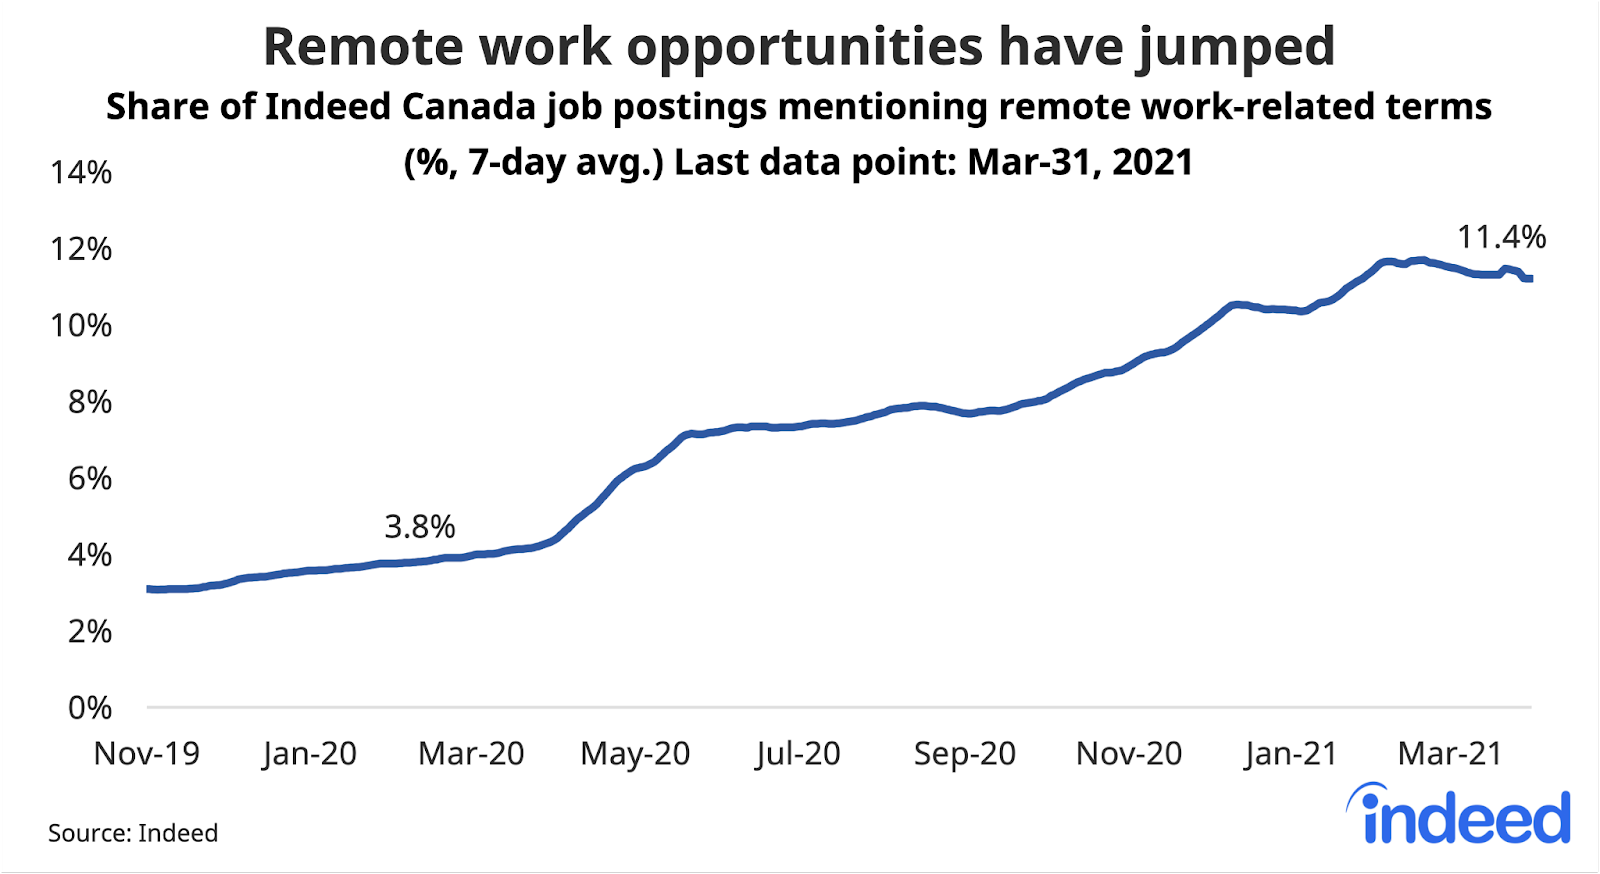 Line graph showing remote work opportunities have jumped